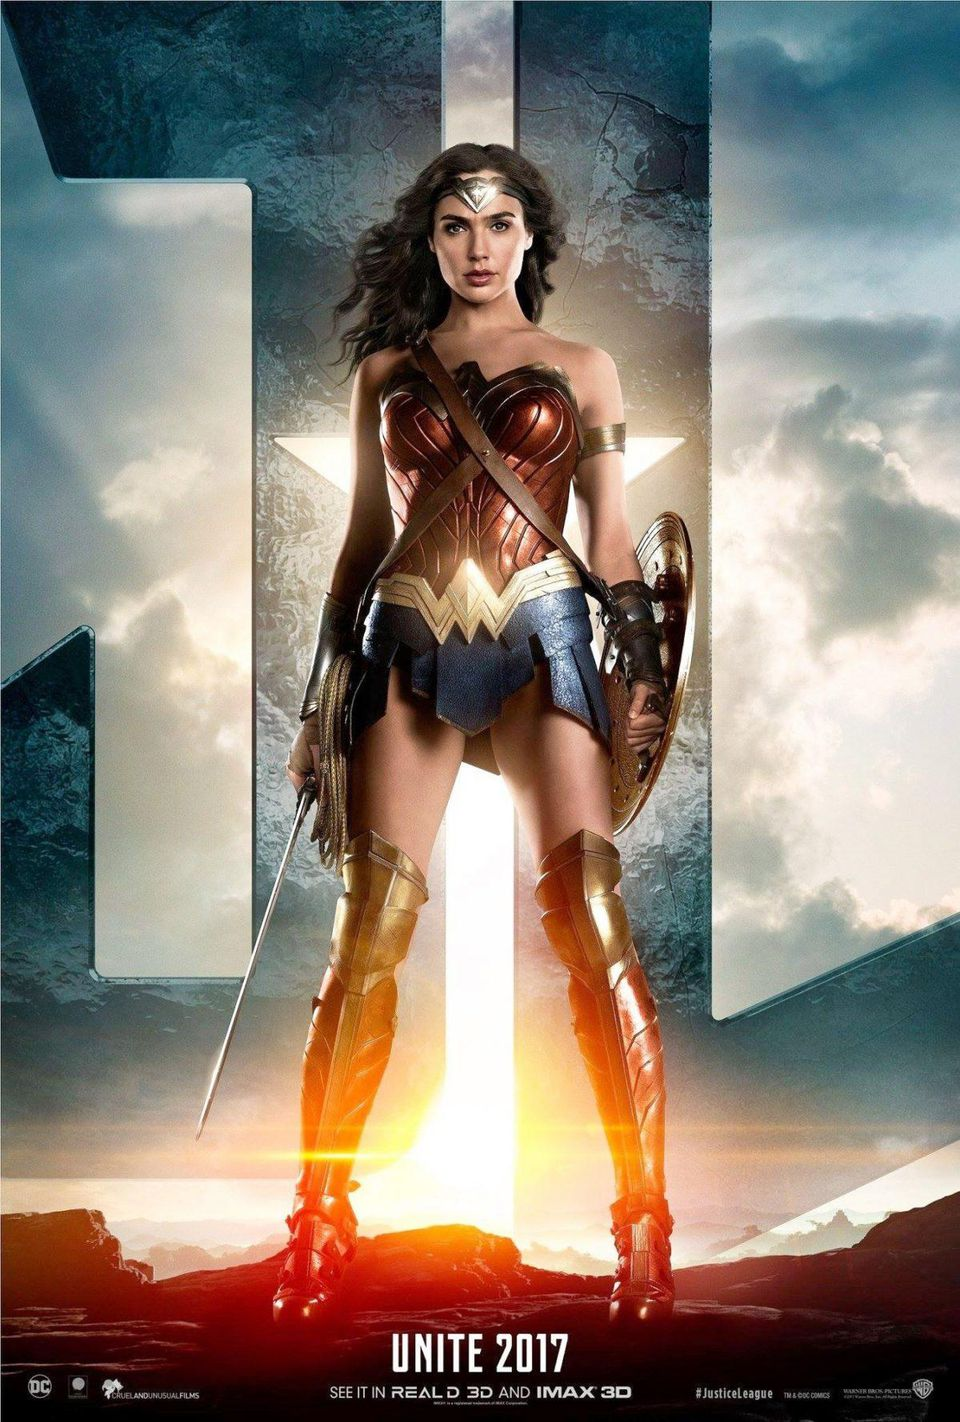 https---blogs-images.forbes.com-markhughes-files-2017-08-JUSTICE-LEAGUE-Wonder-Woman-poster-1-1200x1778.jpg